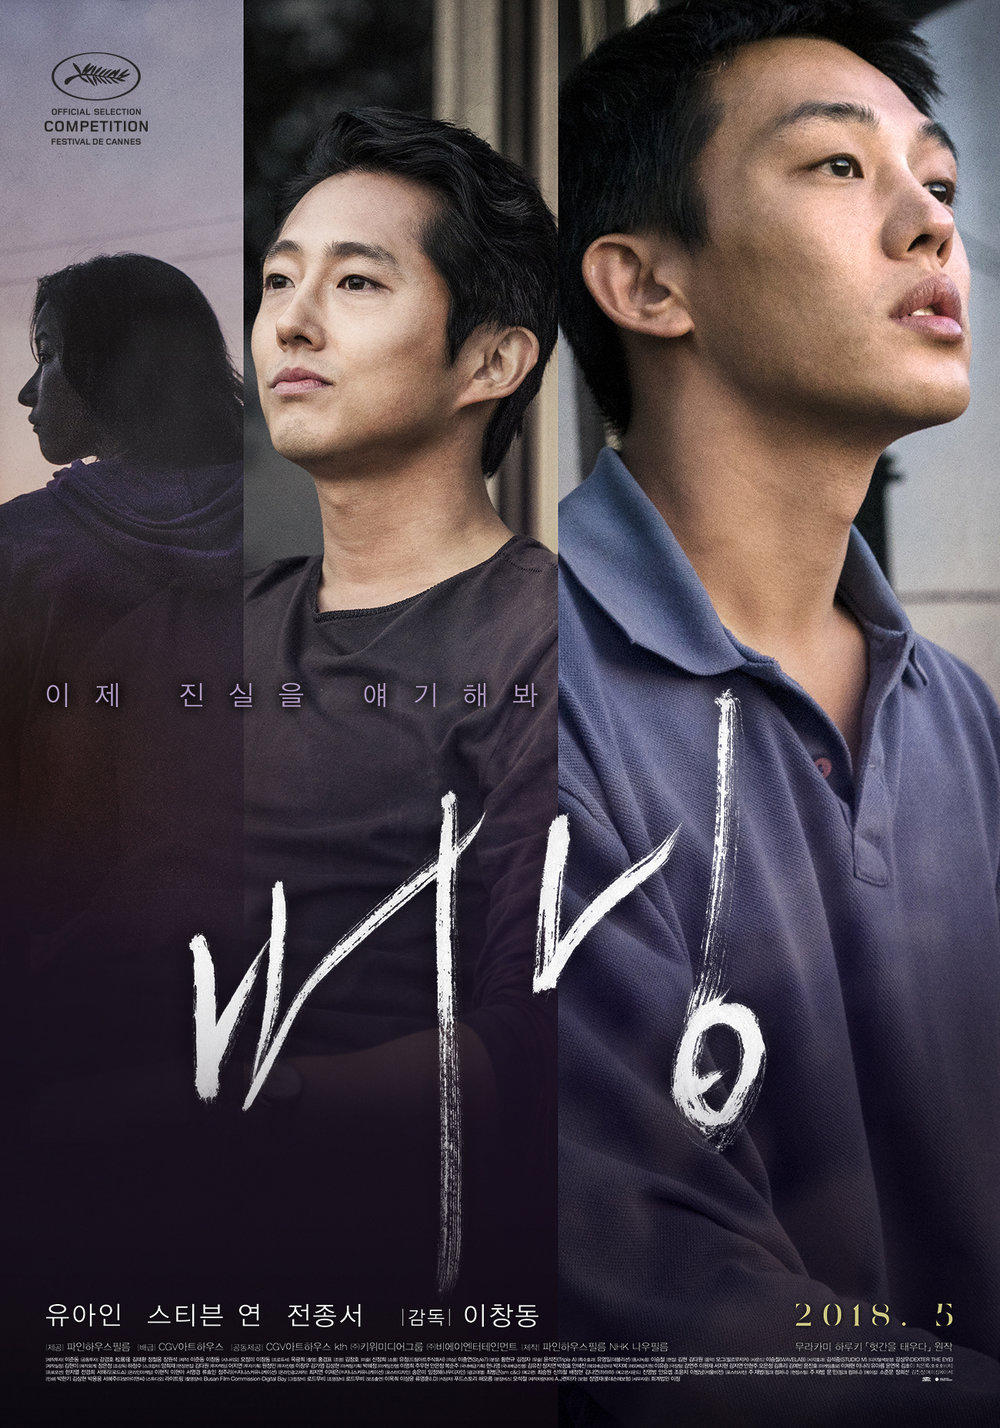 Burning (2018) - Directed by: Chang-dong LeeStarring: Ah-in Yoo, Steven Yeun, Jong-seo JunRated: NR (Suggested R for Some Sexuality and Nudity, and Brief Drug Use and Violence)Running Time: 2 h 28 mTMM Score: 5 stars out of 5STRENGTHS: Writing, Directing, Themes, AtmosphereWEAKNESSES: -